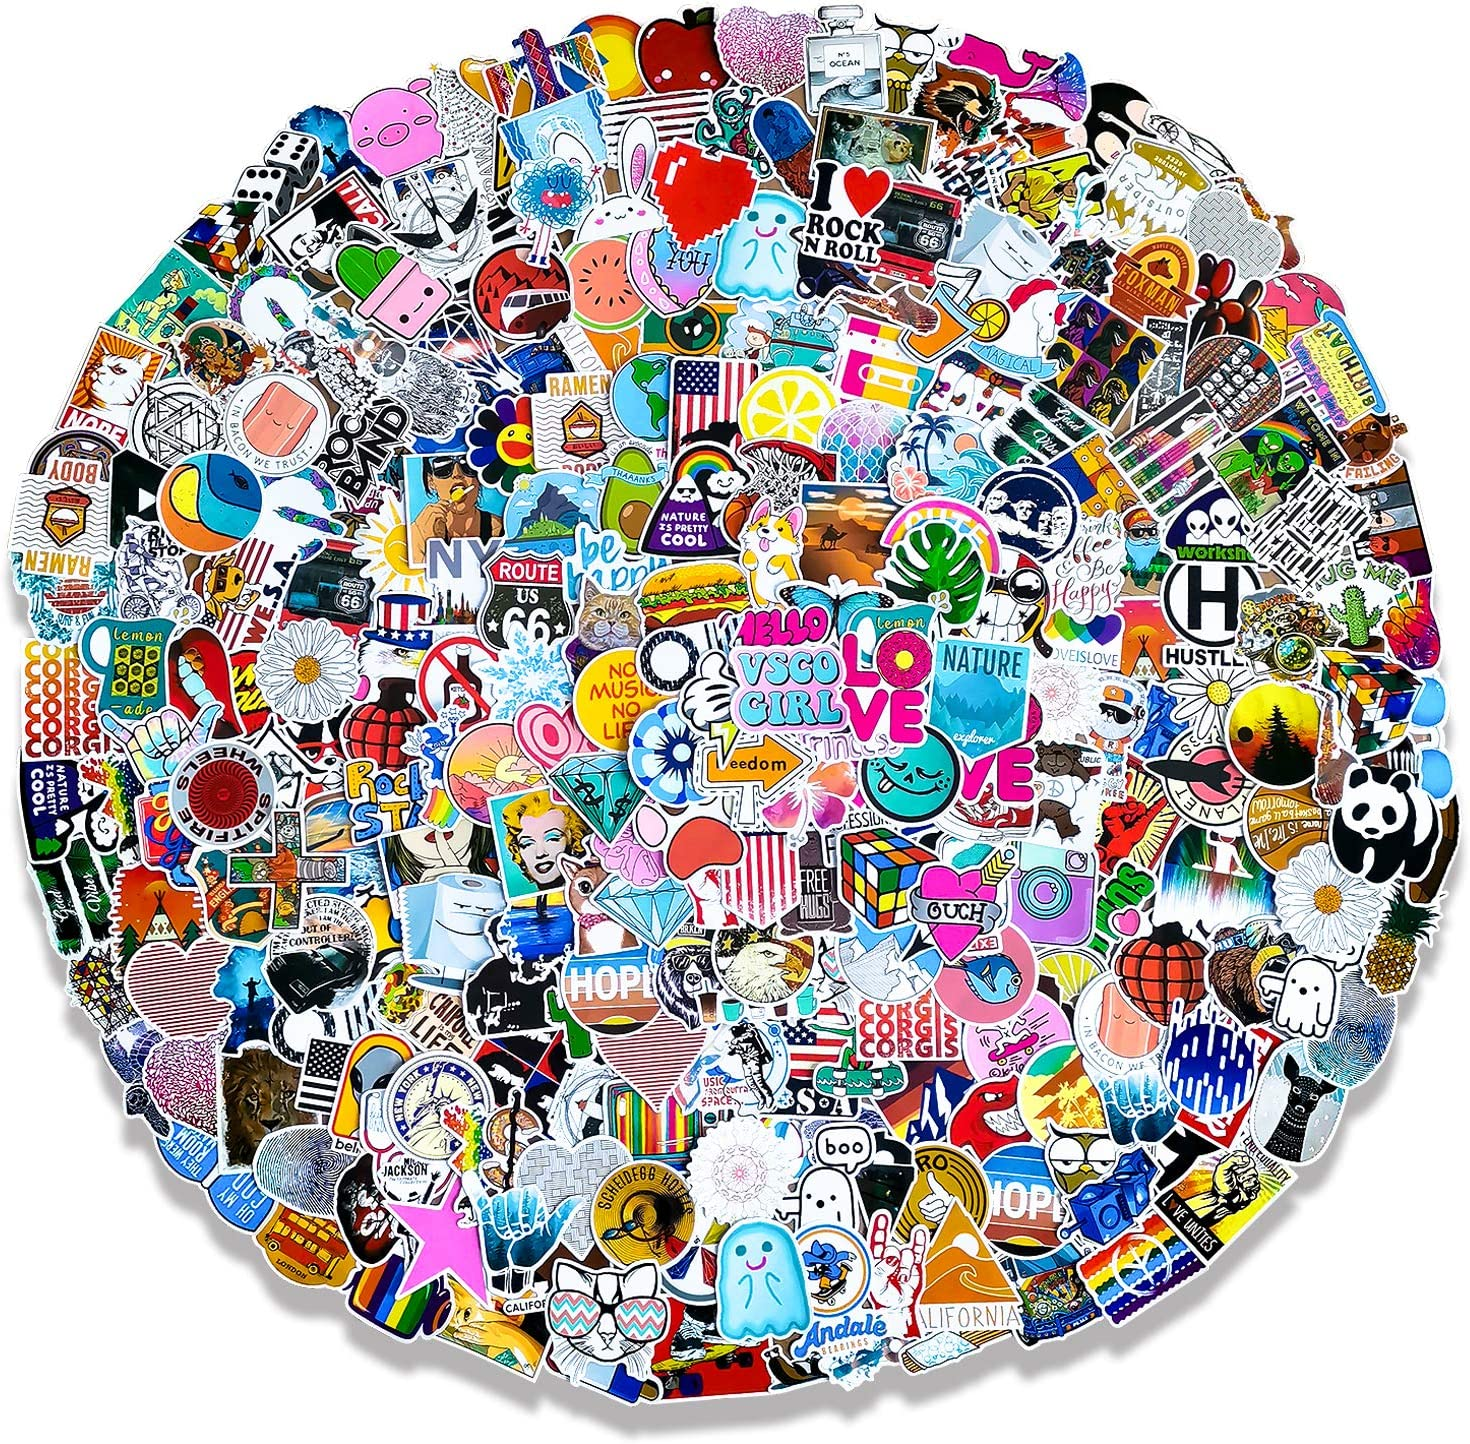 Cute Stickers 500Pcs Pack (50-500Pcs/Pack) Laptop Stickers for Waterbottle,Snowboard,Luggage,Motorcycle,iPhone,Mac